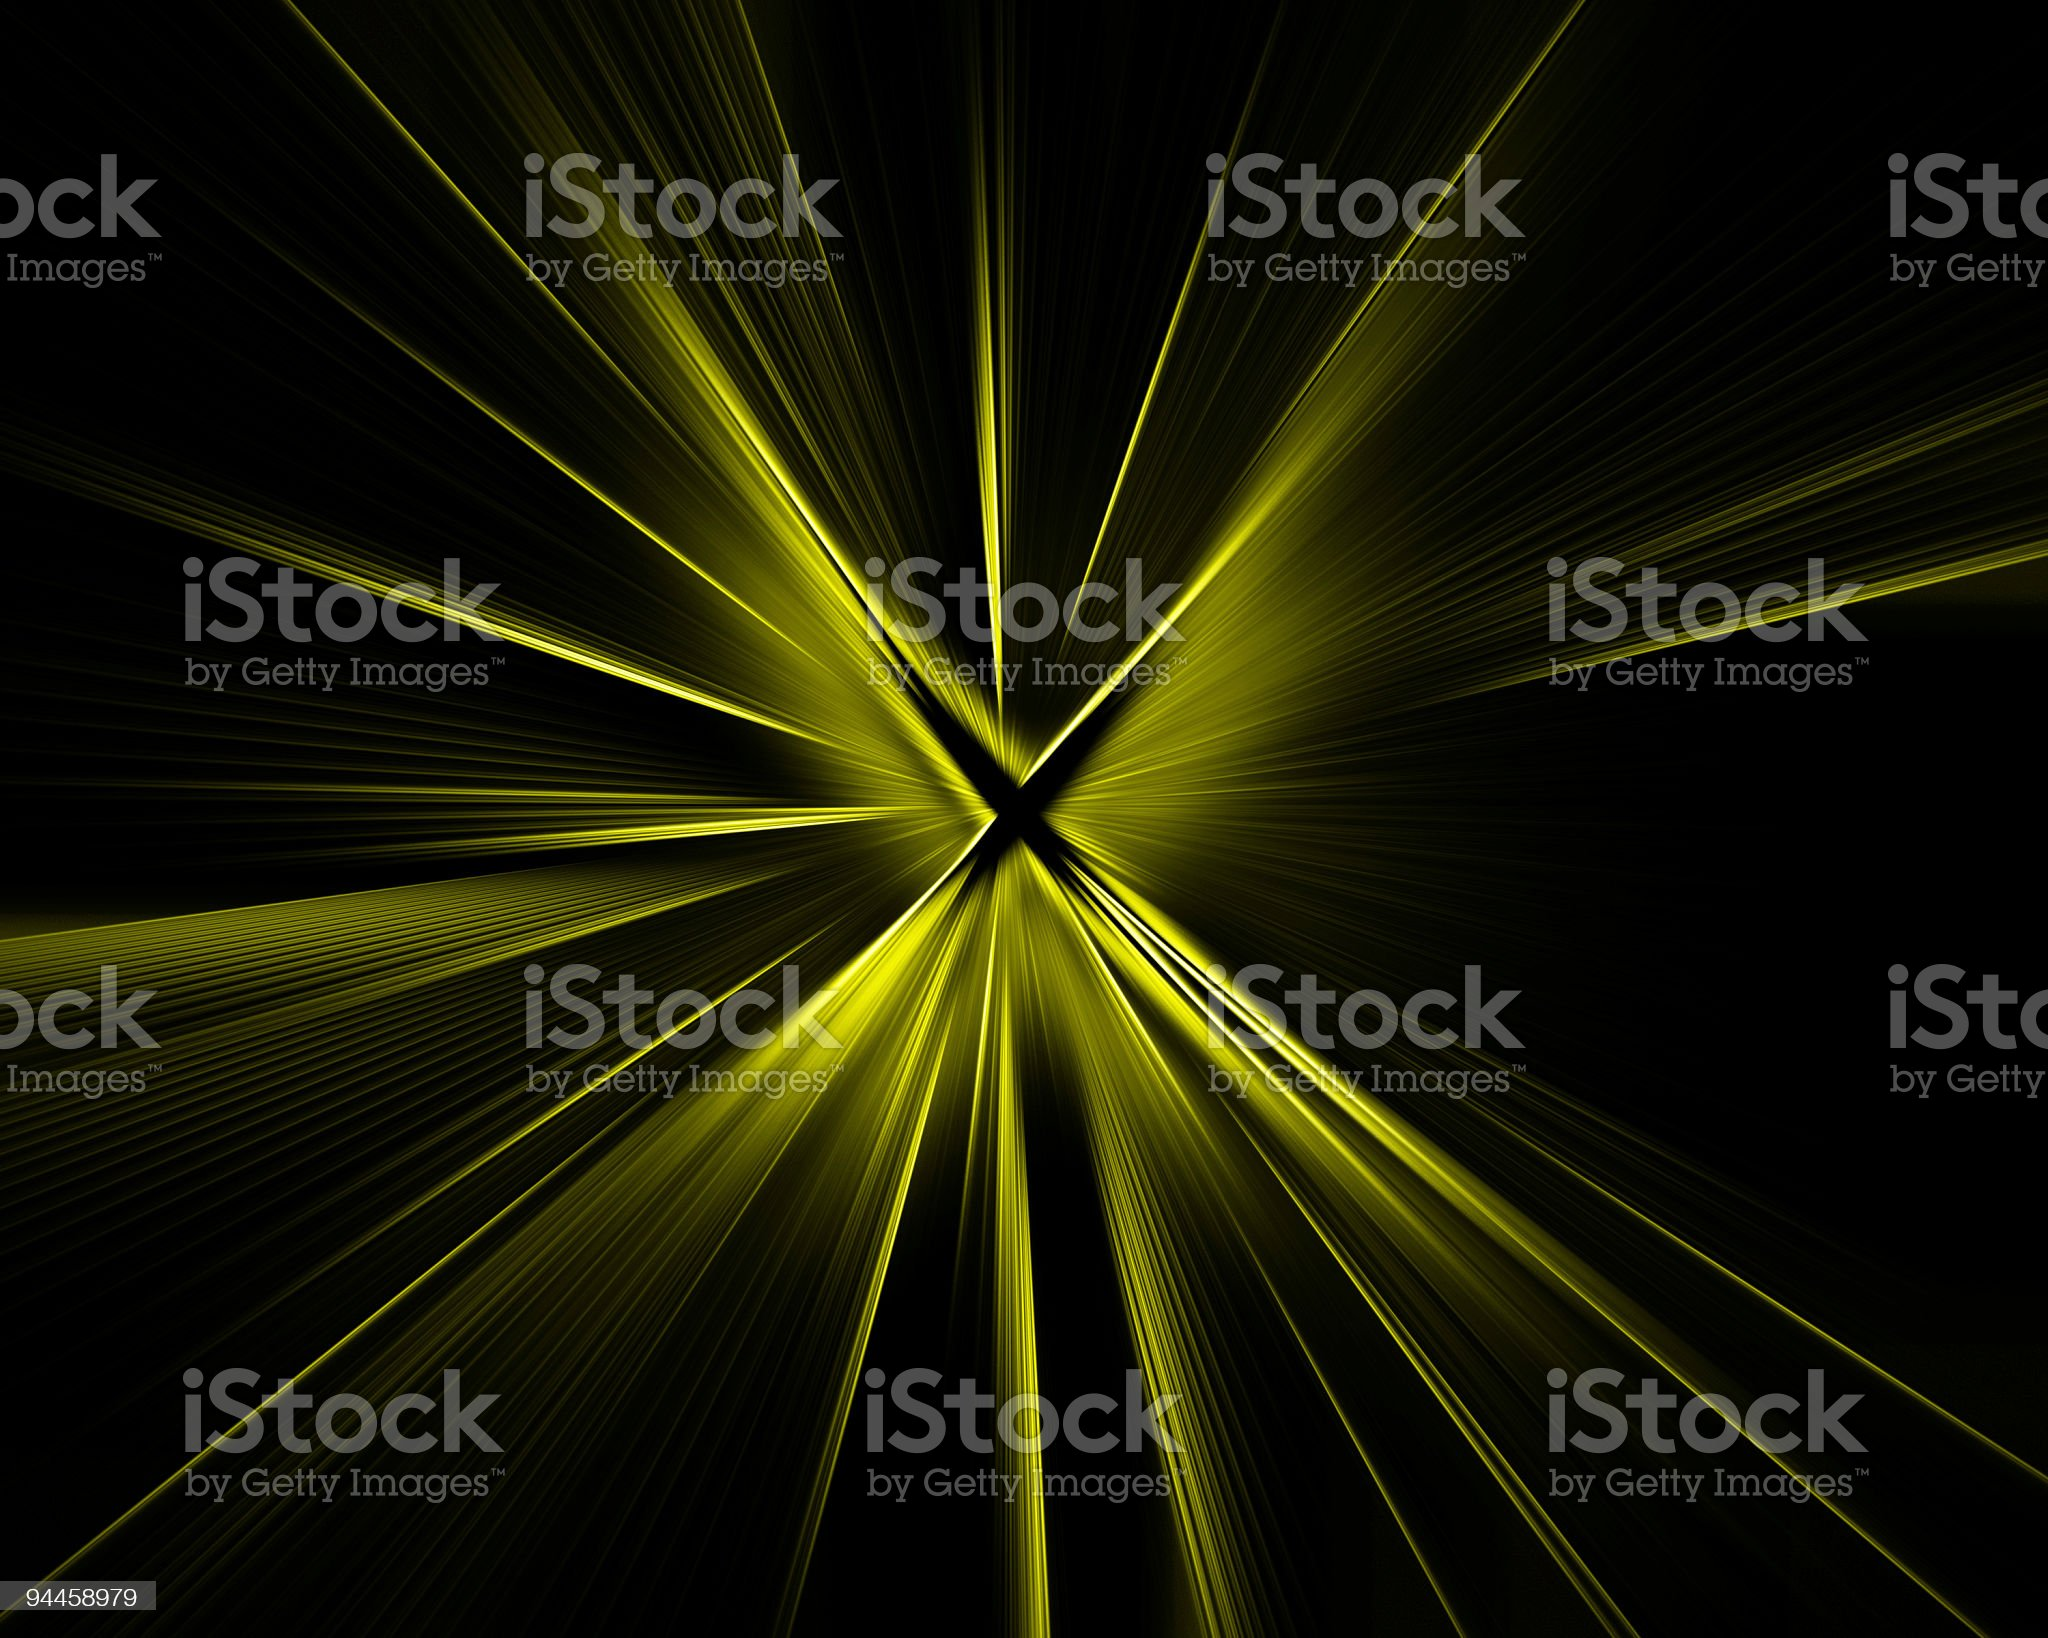 Background - X marks the spot royalty-free stock photo